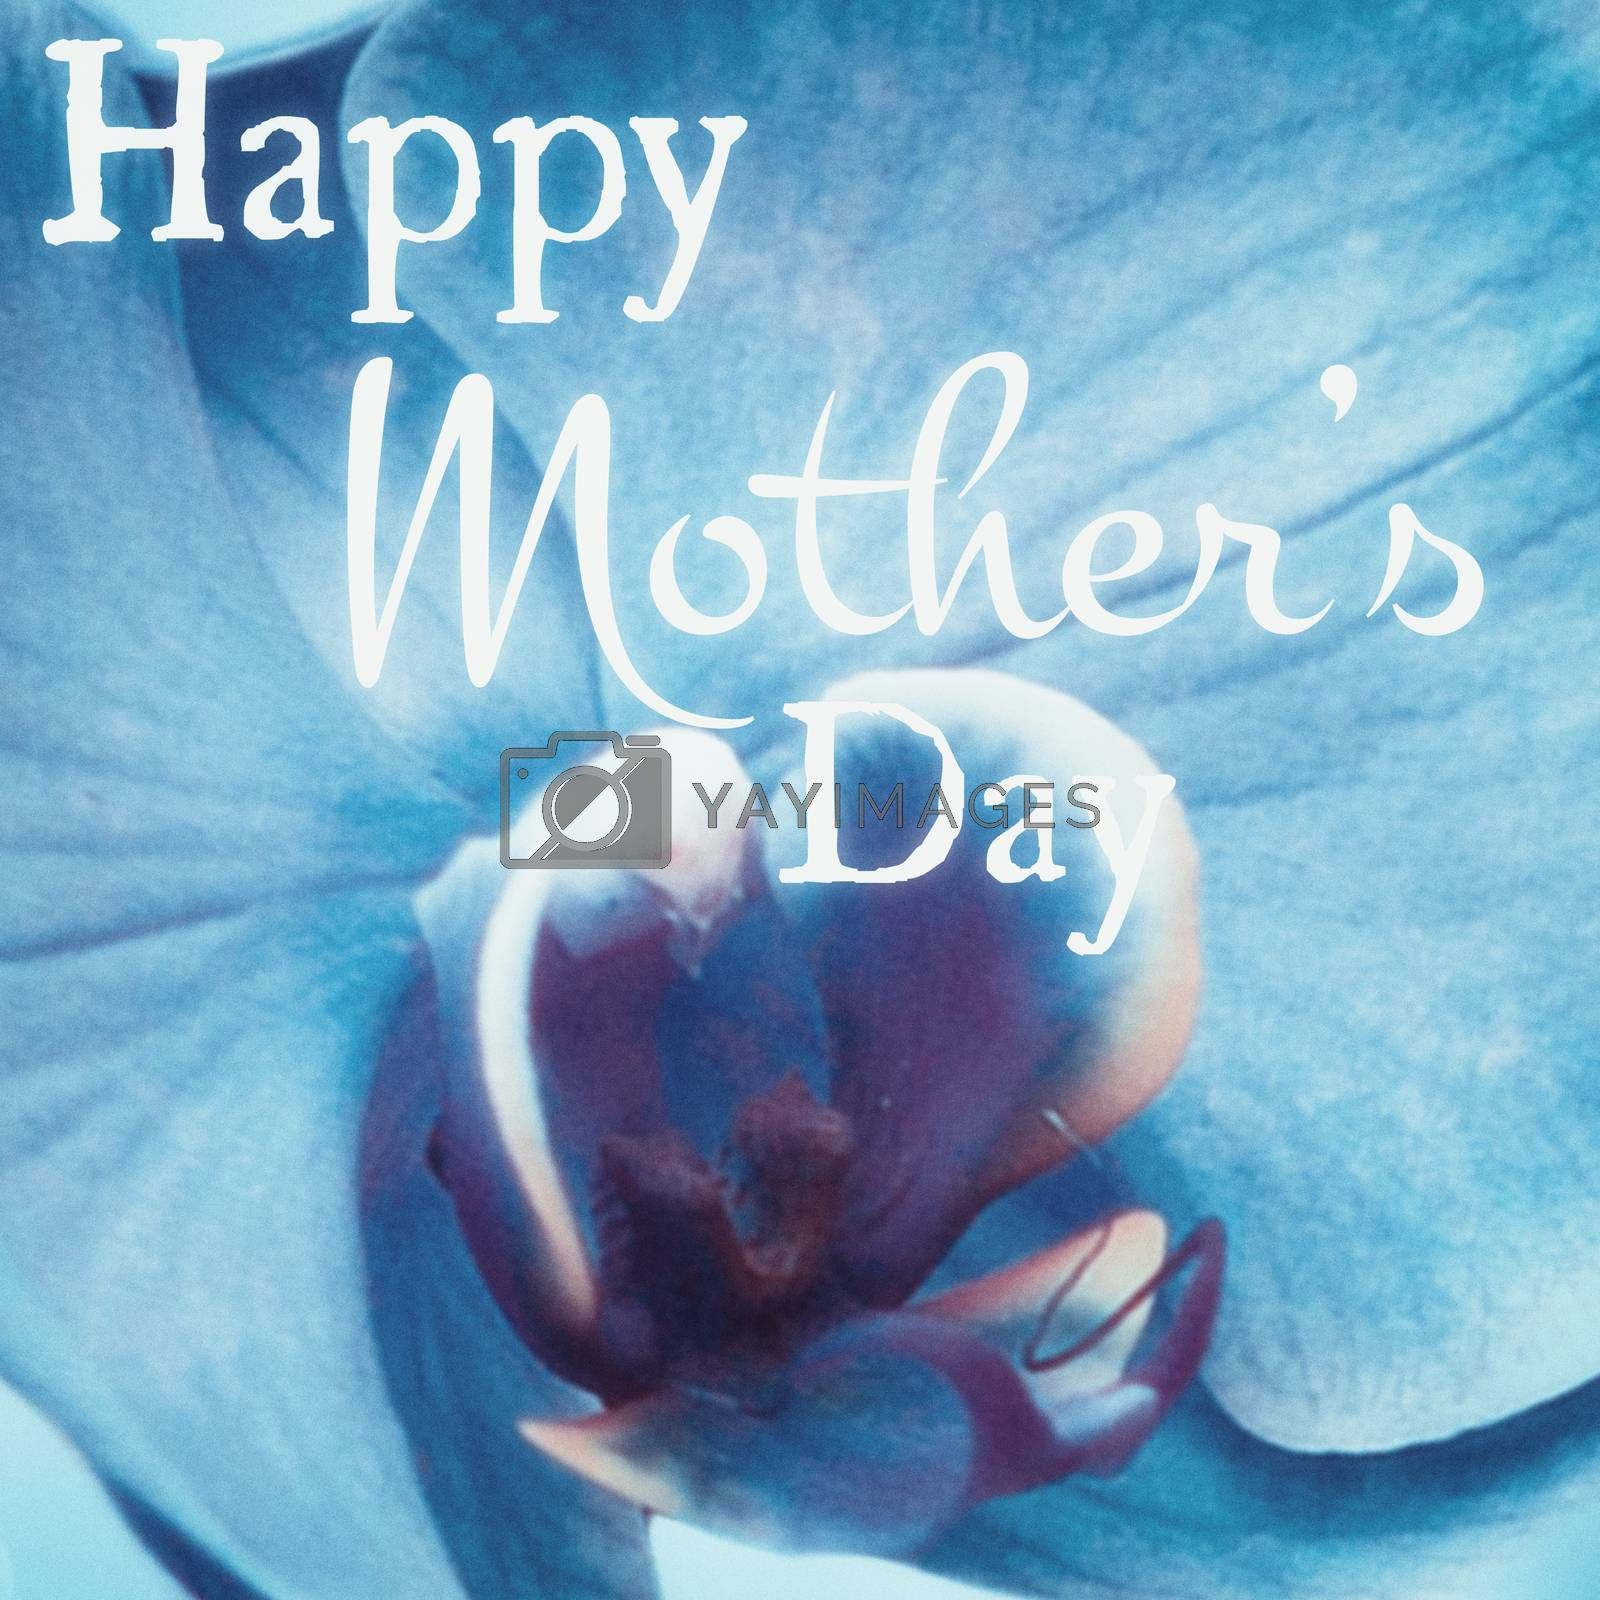 Happy mothers day message on flower background